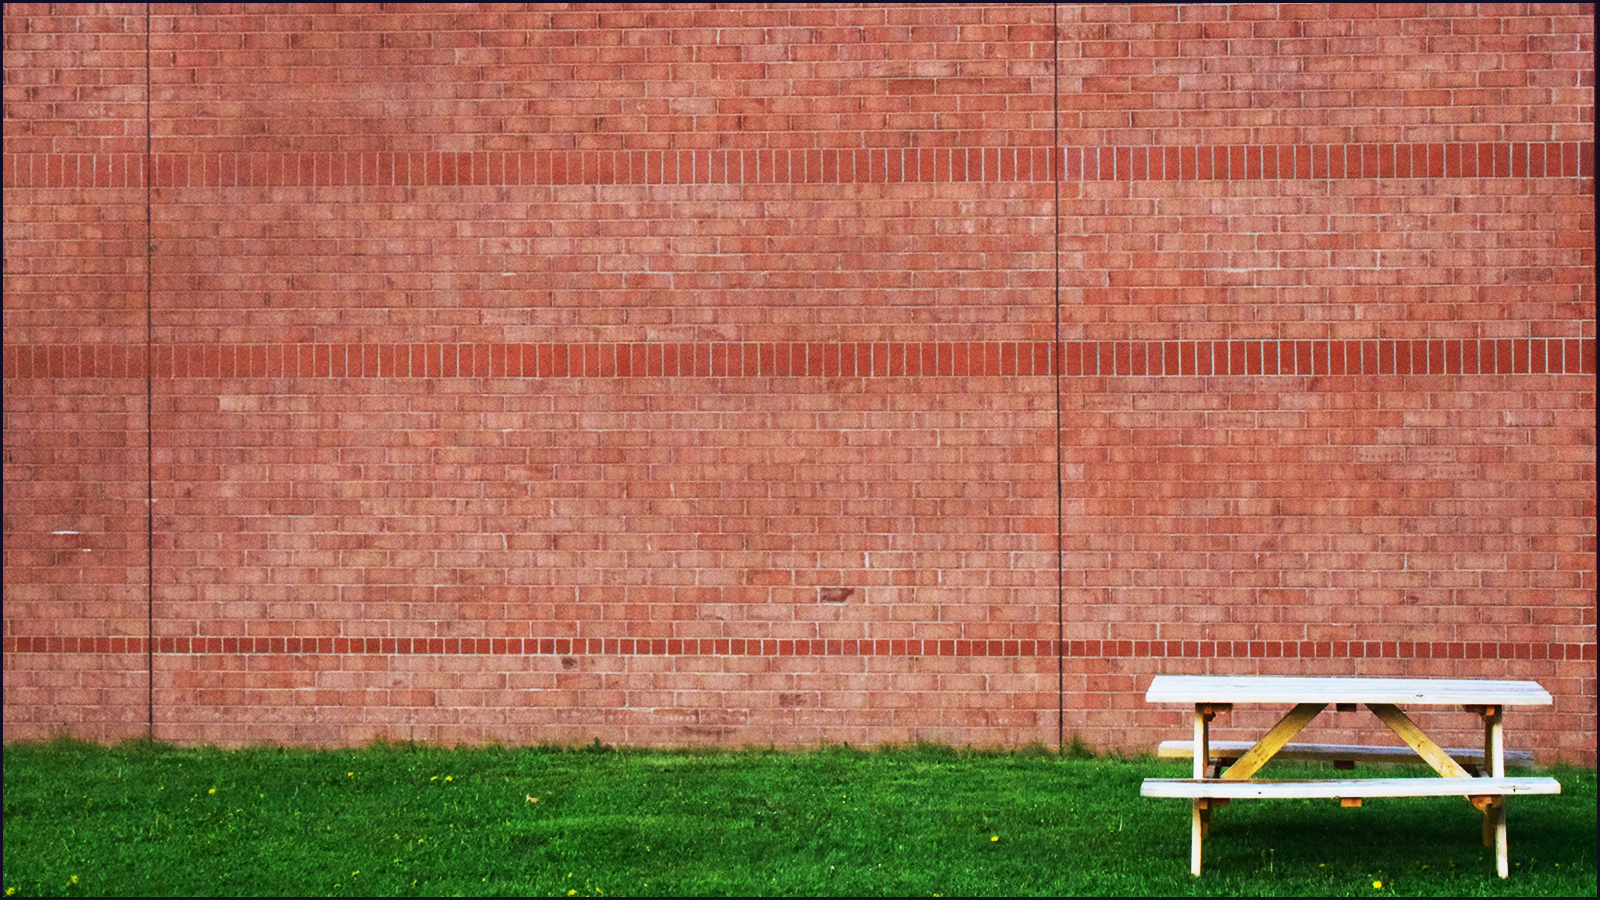 soon robots will be building all the walls...will man sit and have a picnic with the free time? (c) mark somple2018